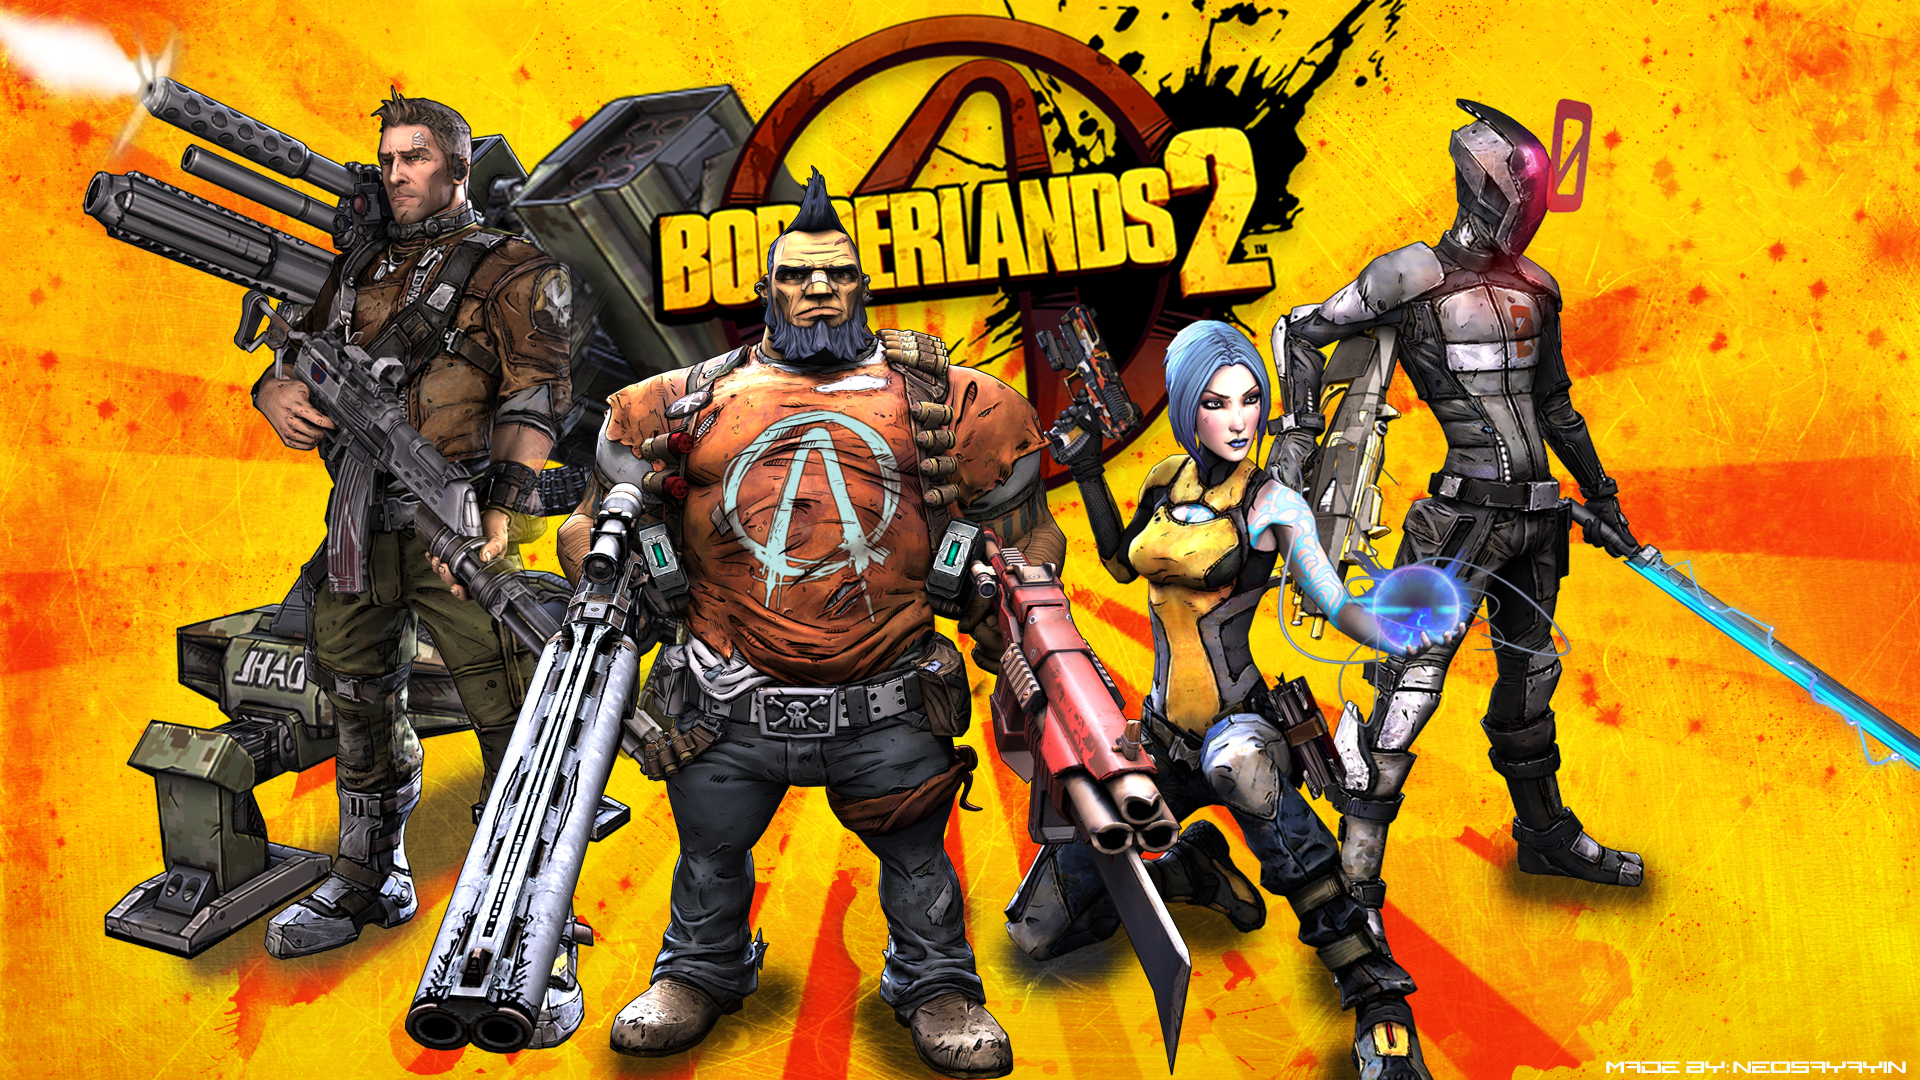 Free Borderlands 2 Wallpaper